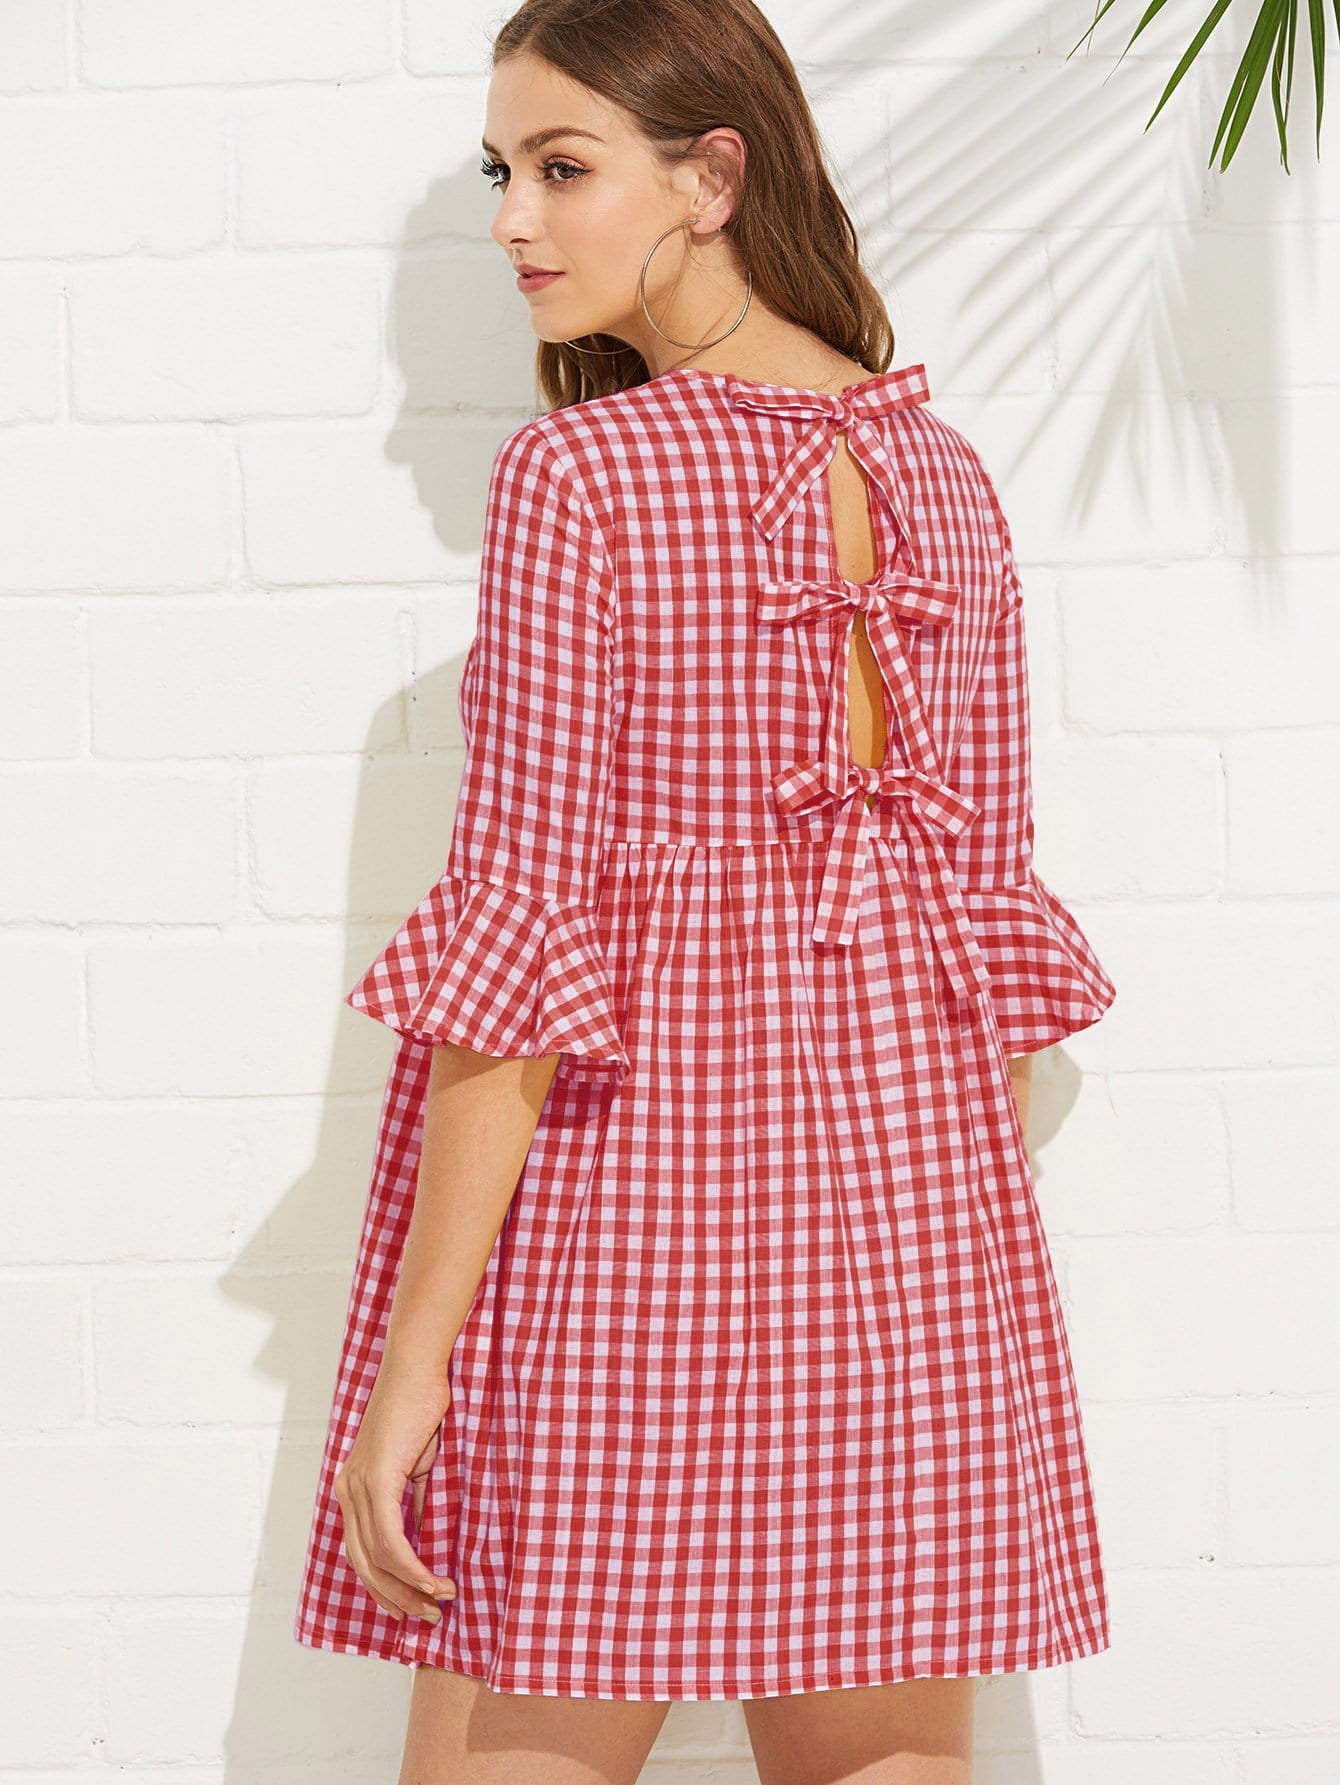 Bow Tie Open Back Fluted Sleeve High Waist Gingham Dress Bow Tie Open Back Fluted Sleeve High Waist Gingham Dress